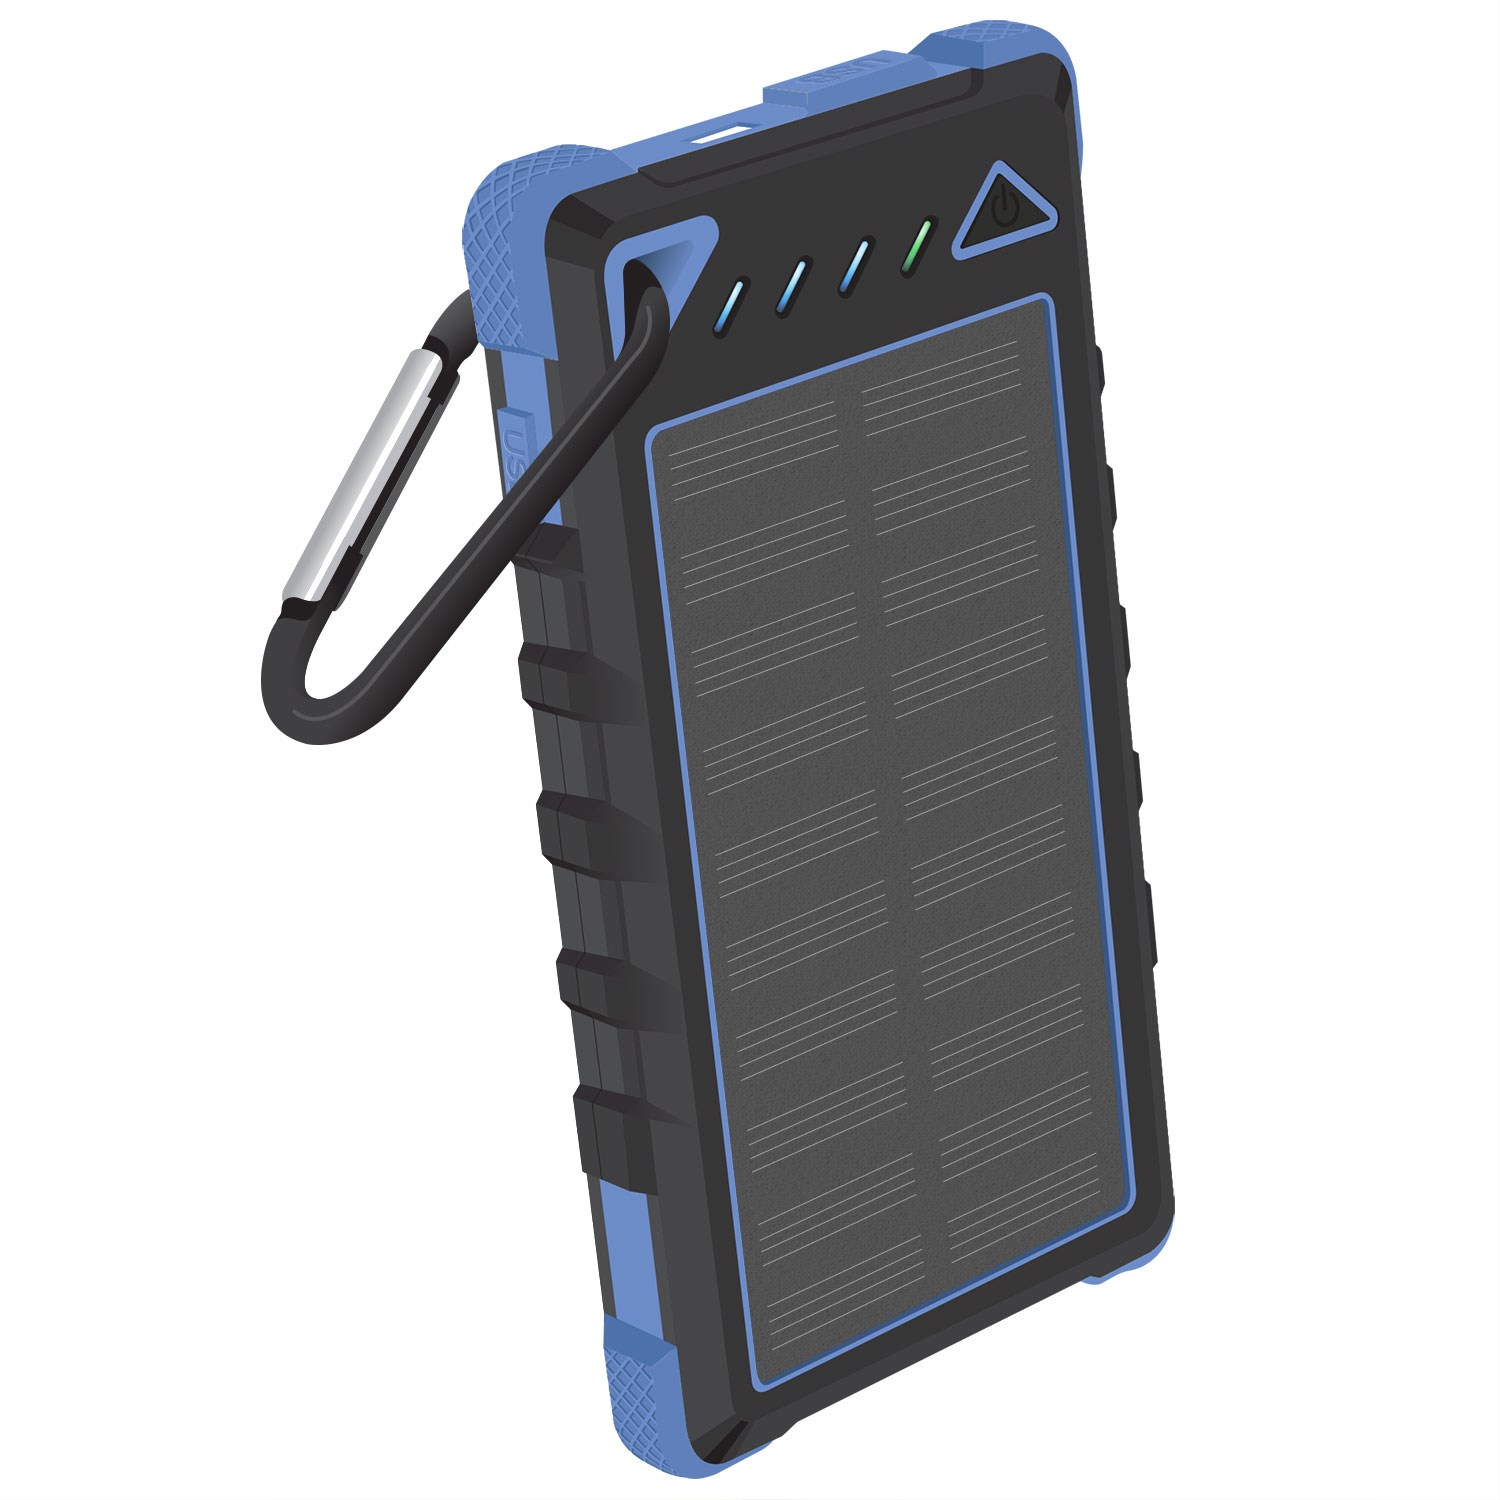 Huawei Honor 5X Solar Powered Portable PowerBank Blue